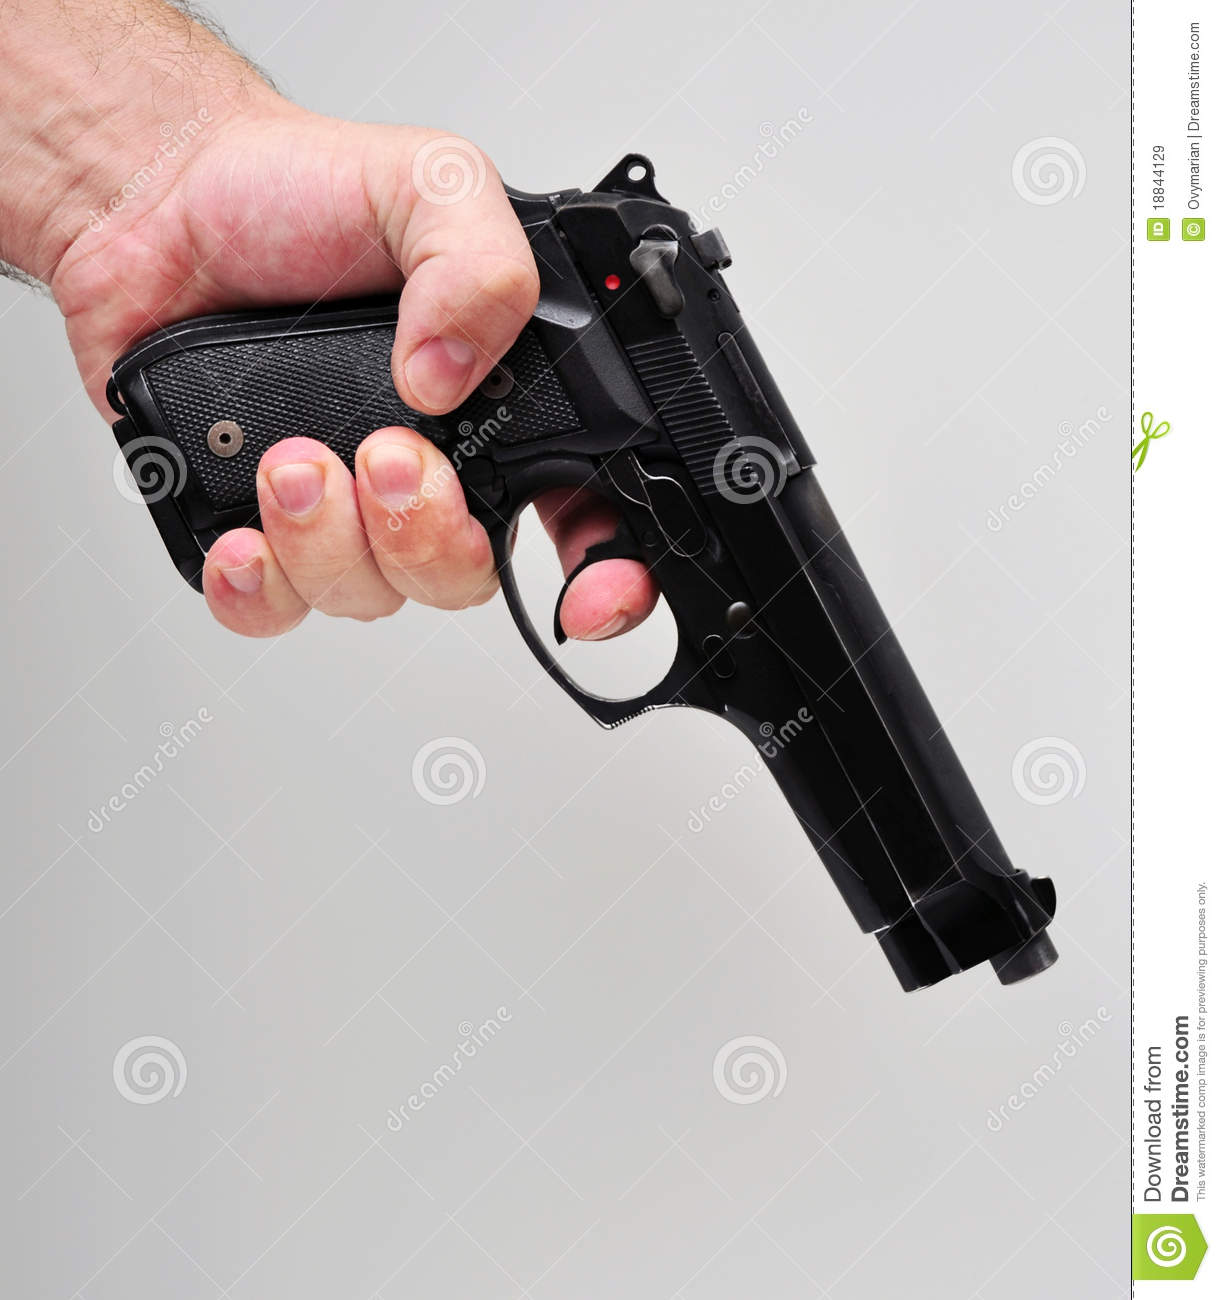 Hand holding a pistol stock image. Image of criminal ...